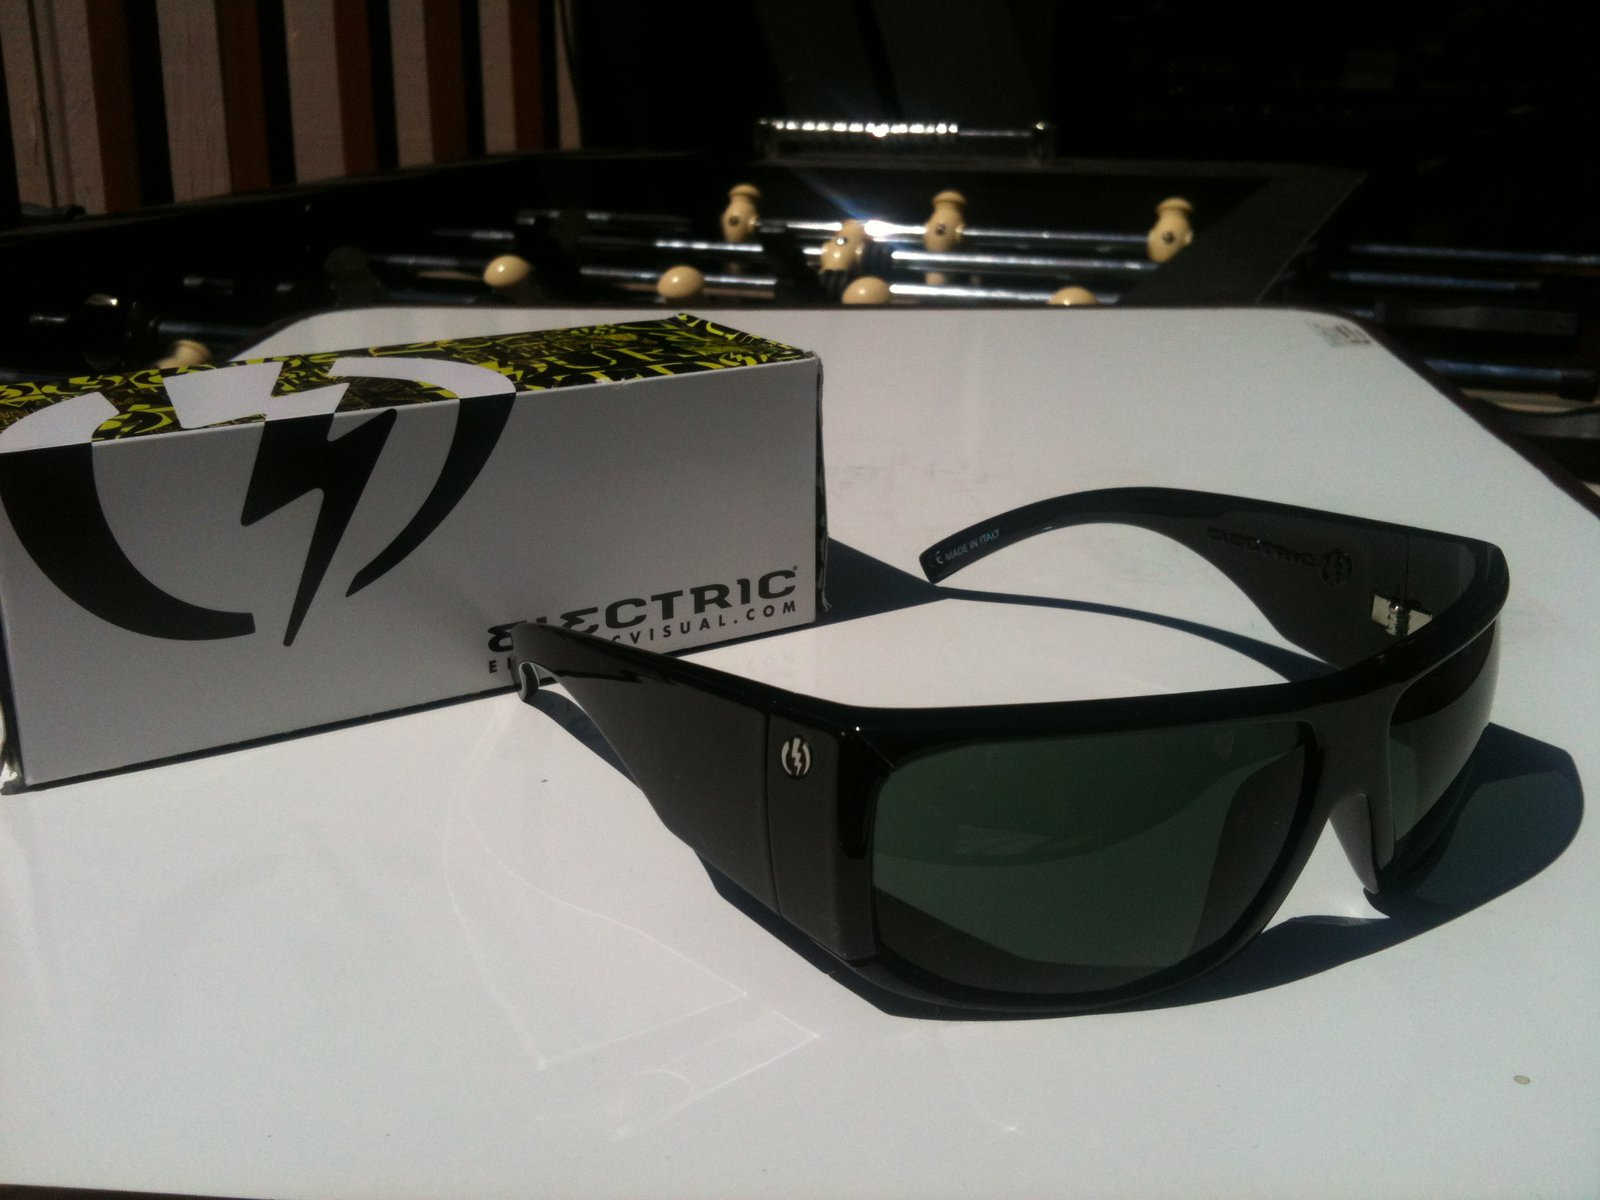 NEW Electric Jailbreak sunglasses